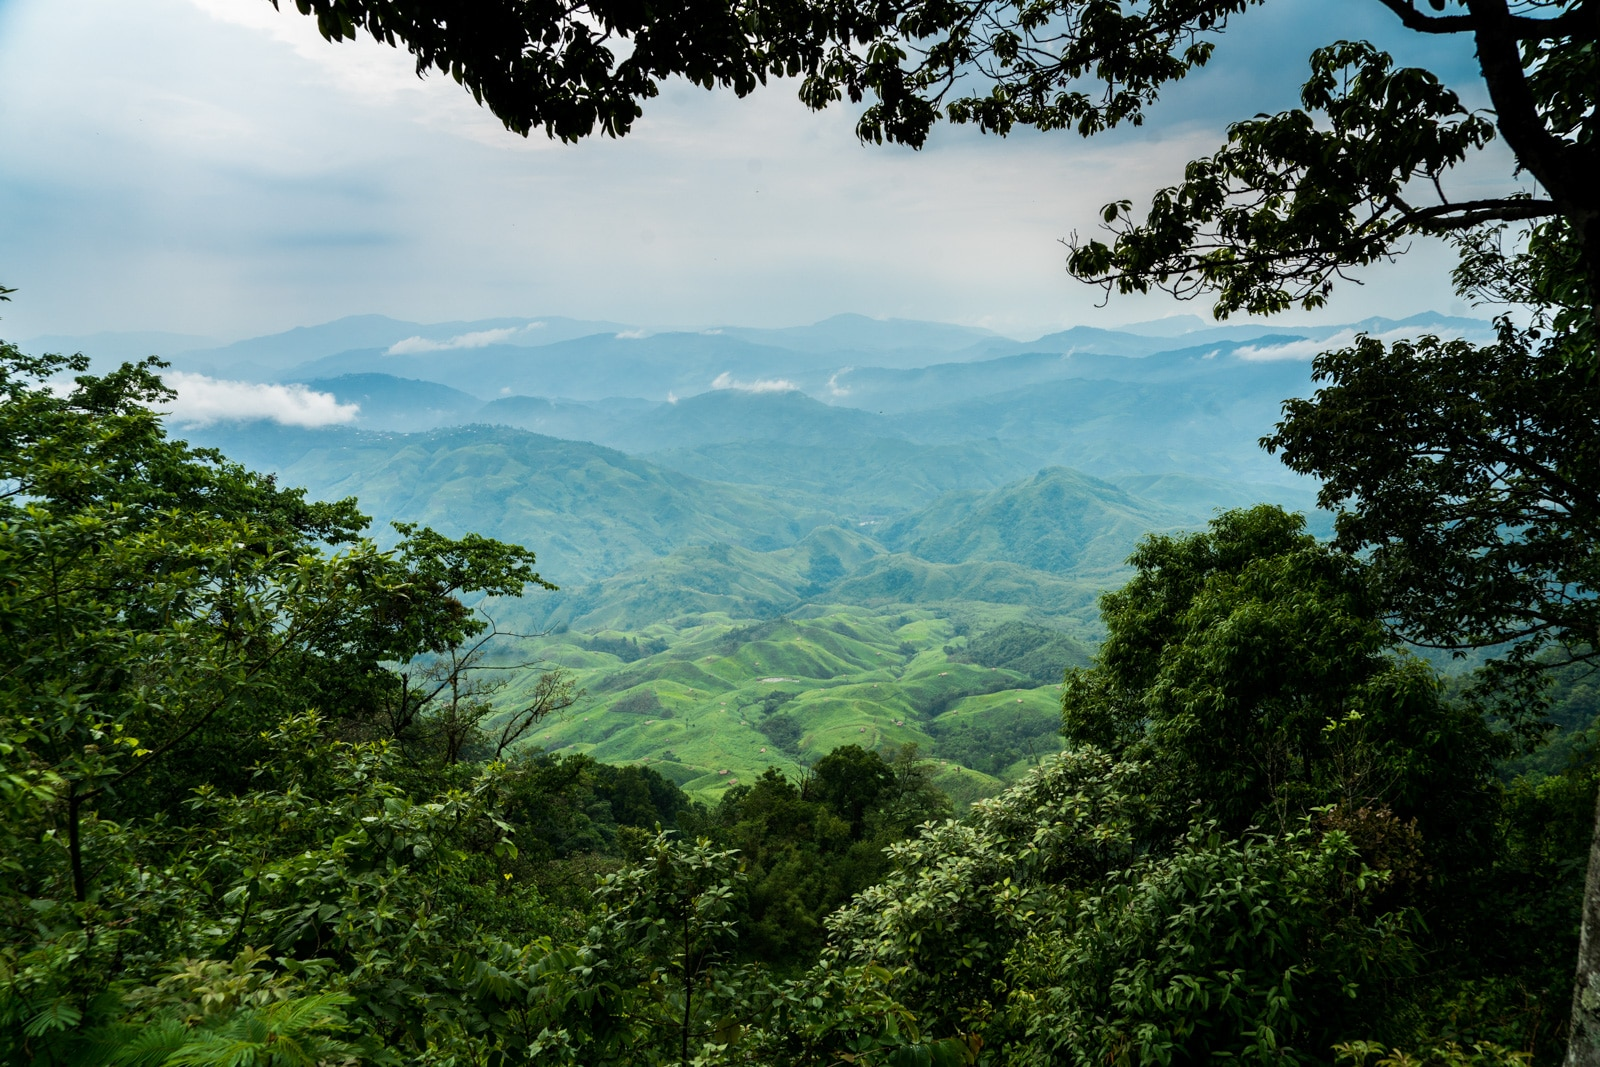 Hills and trees in Nagaland